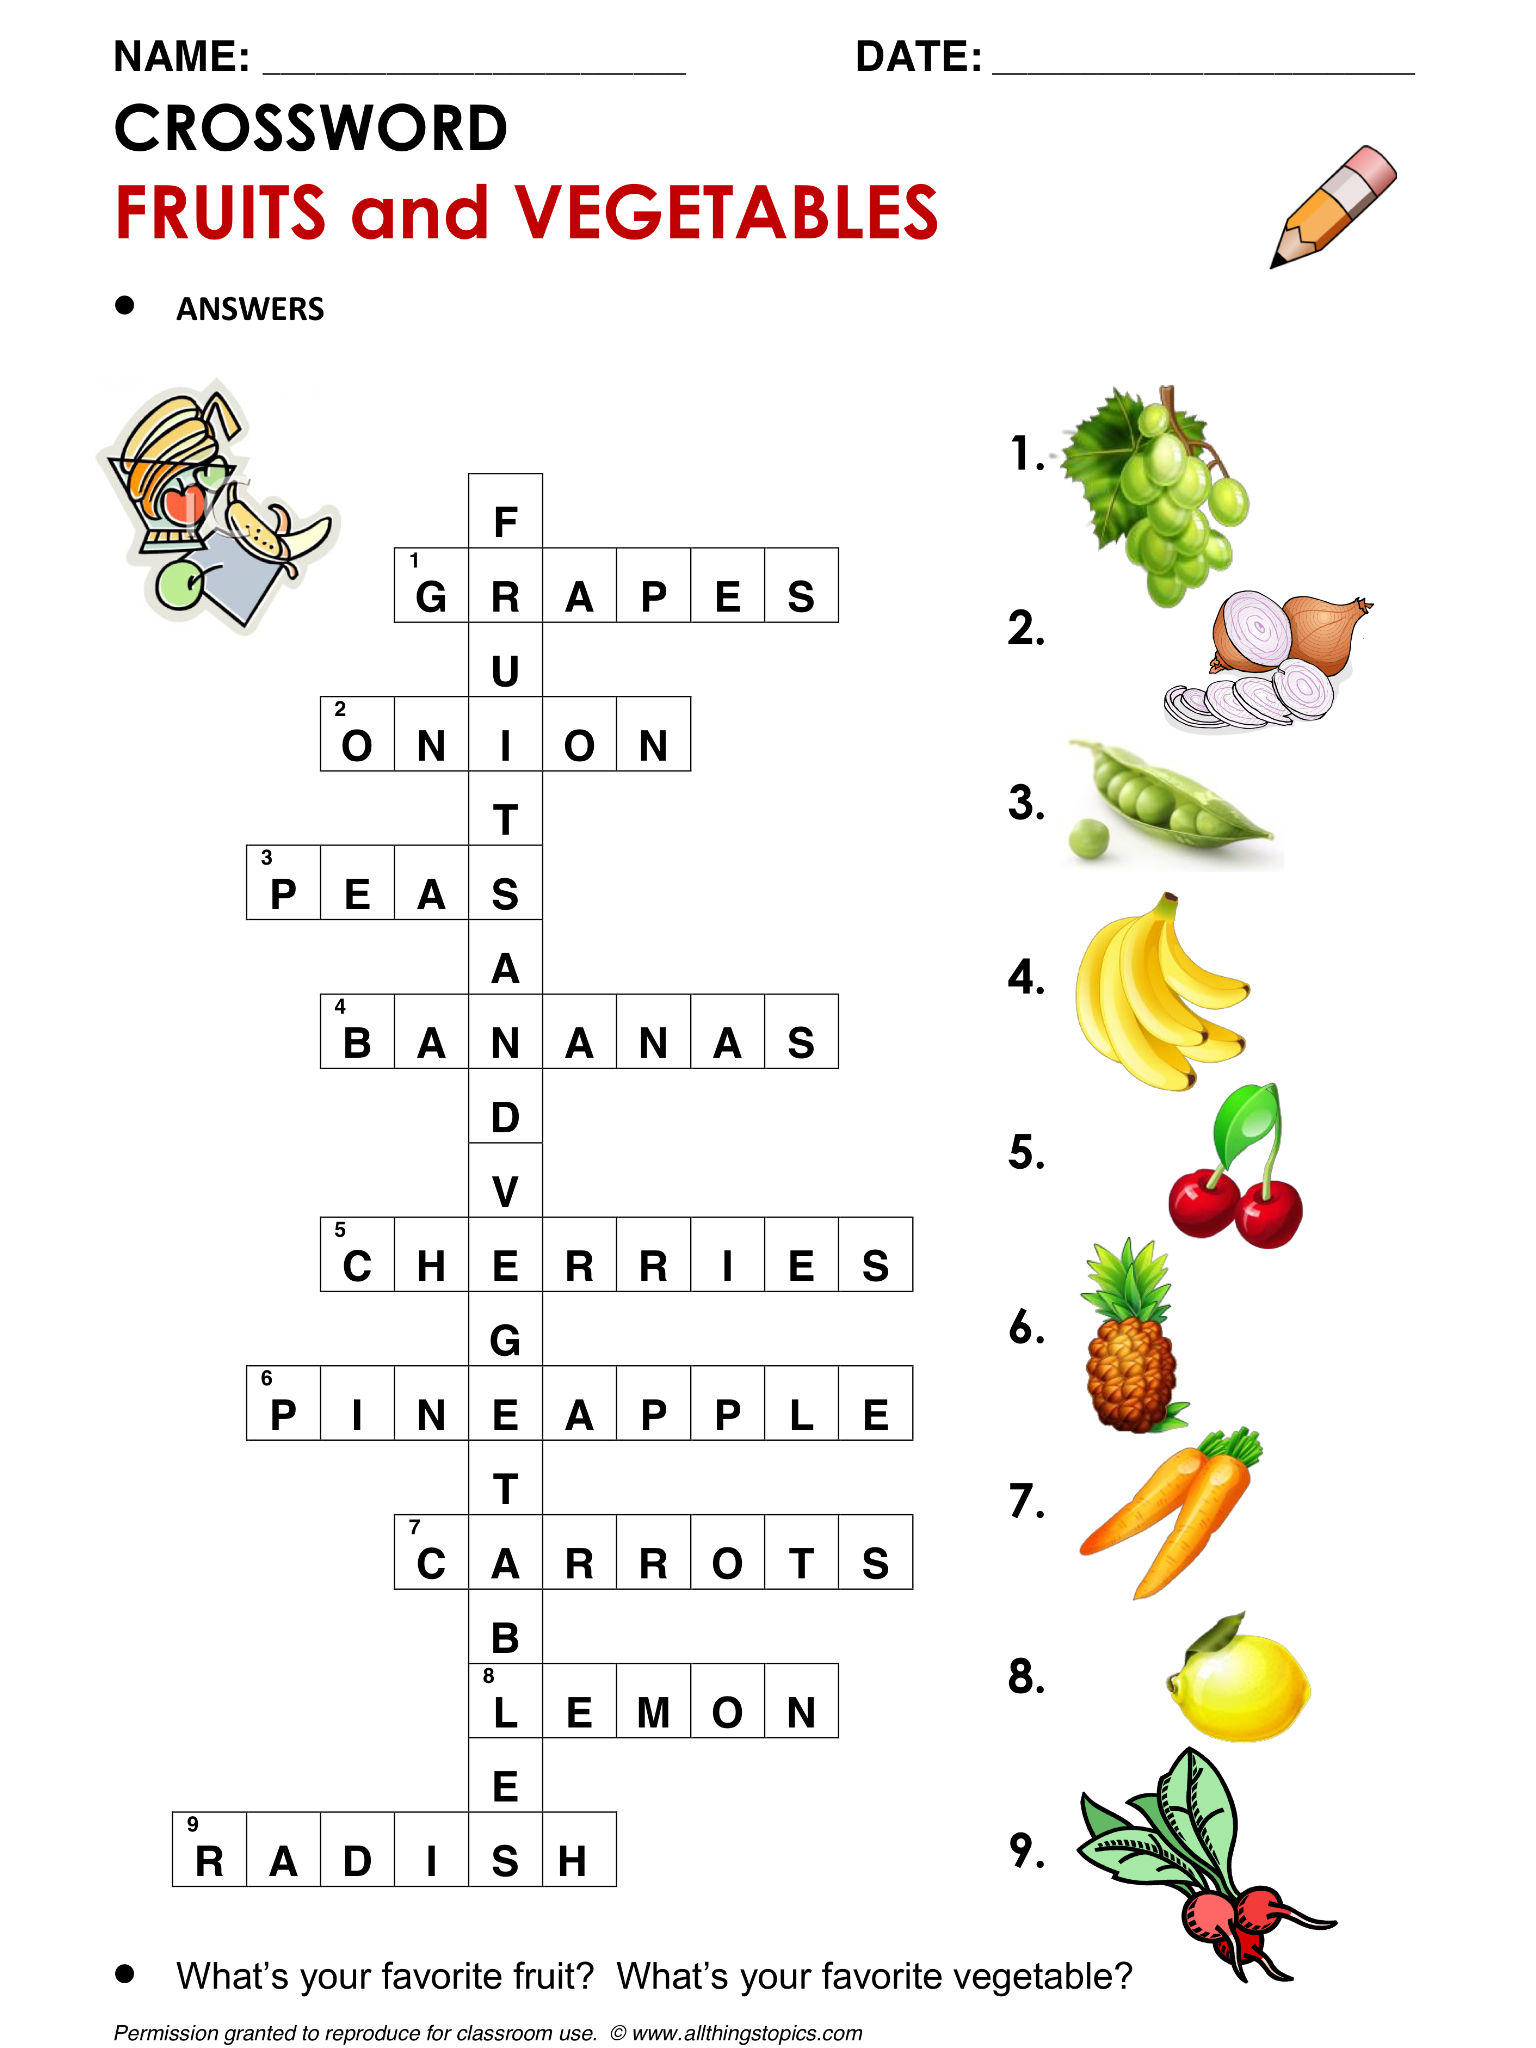 English Crossword Vocabulary Building Fruits And